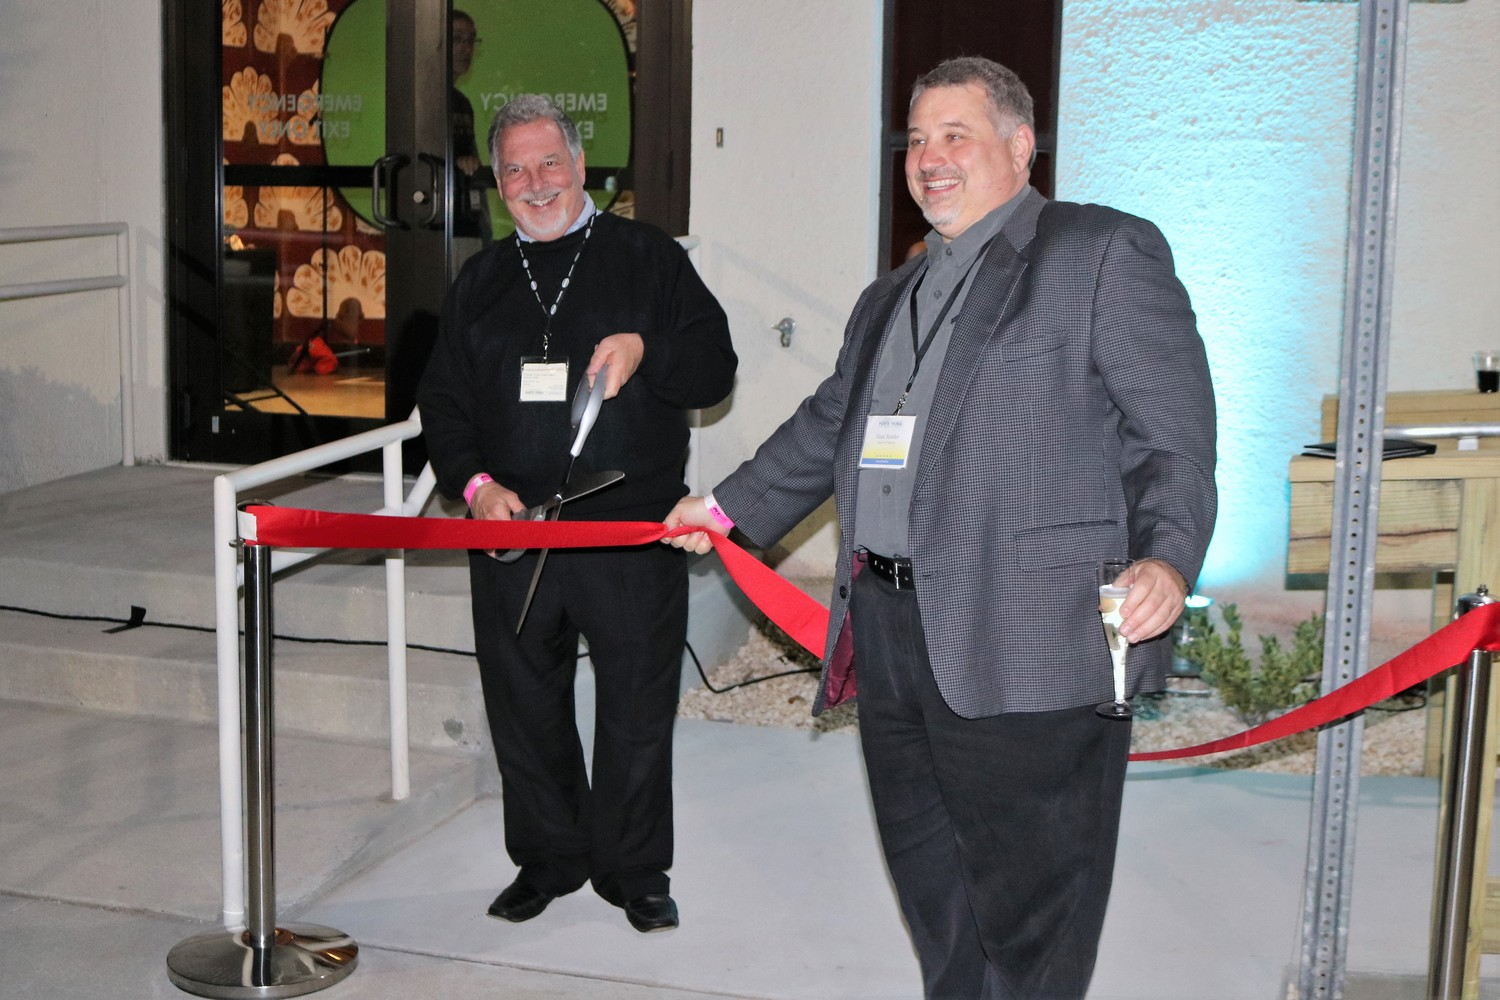 Friends of the Ponte Vedra Concert Hall President Steve Gard (left) and Director Marc Ressler cut the ribbon for the outdoor deck.